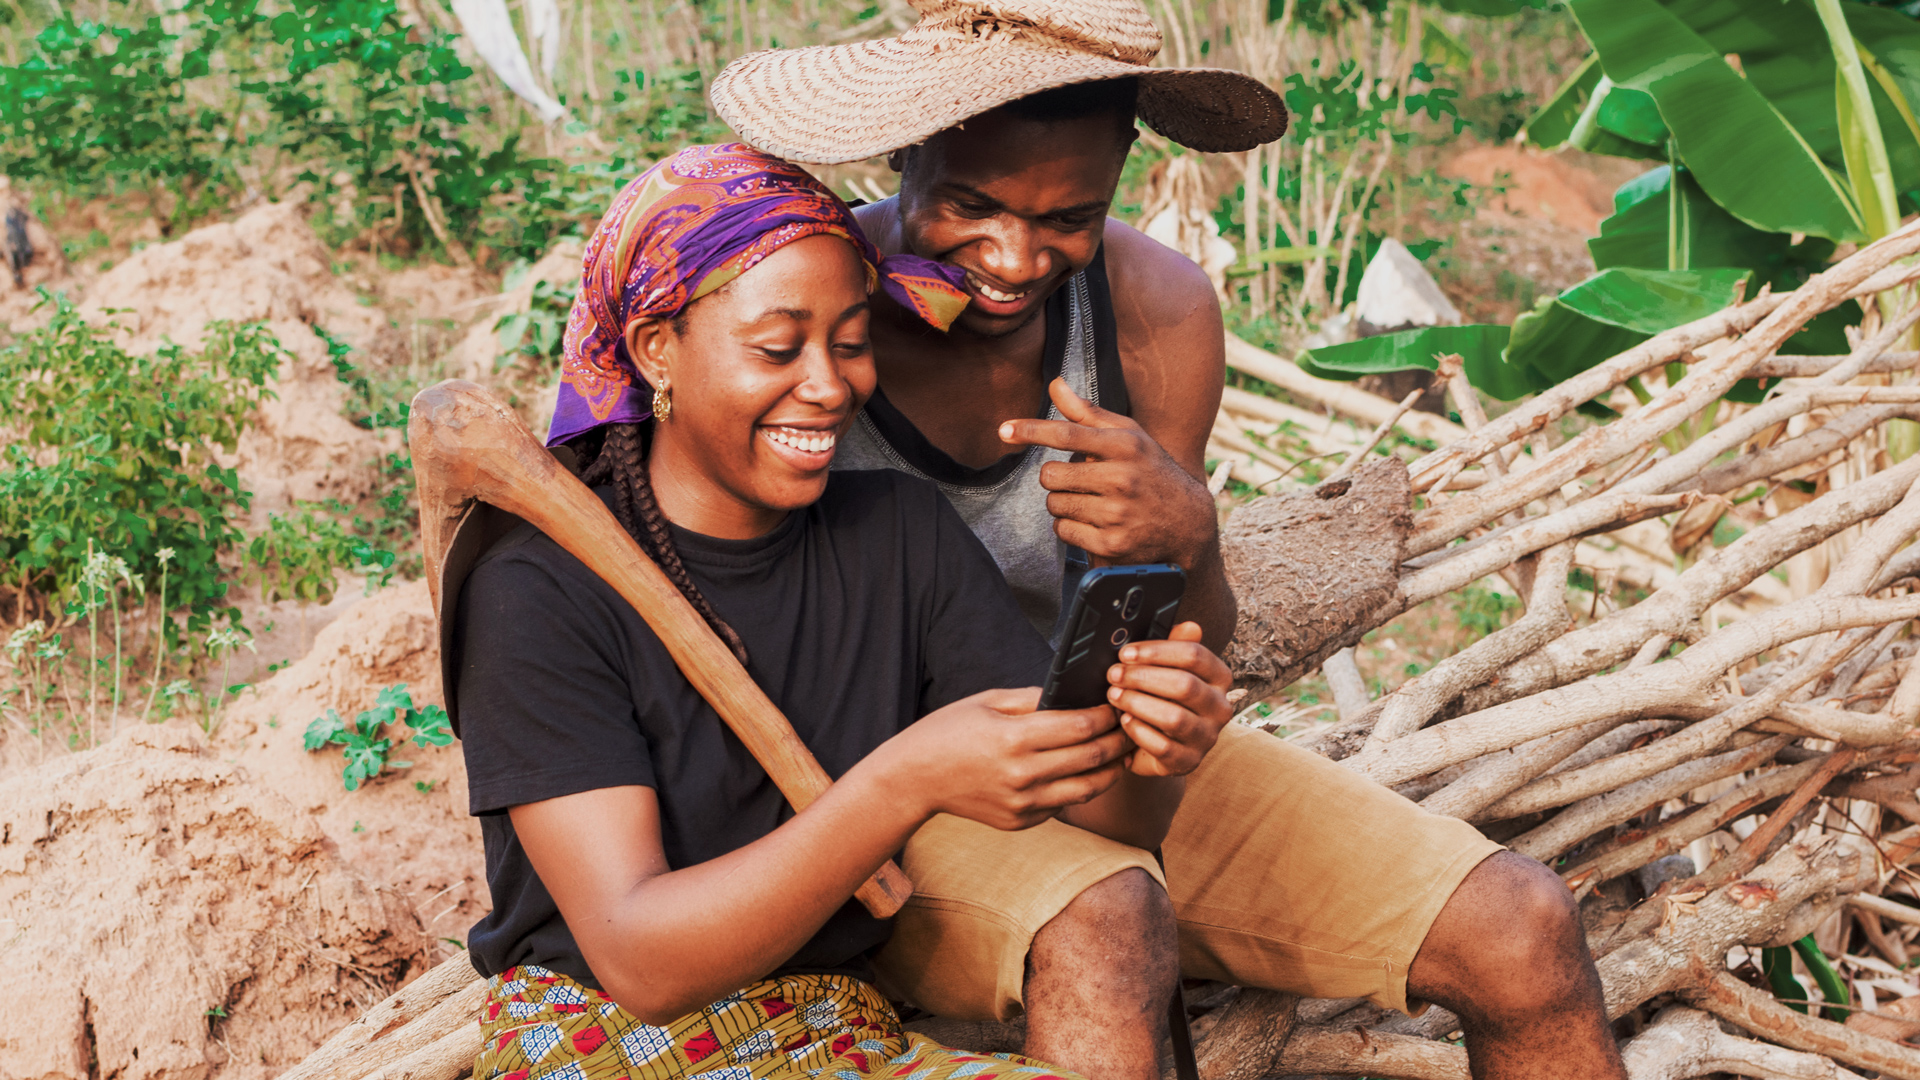 Photo of two people in a rural area looking at a phone